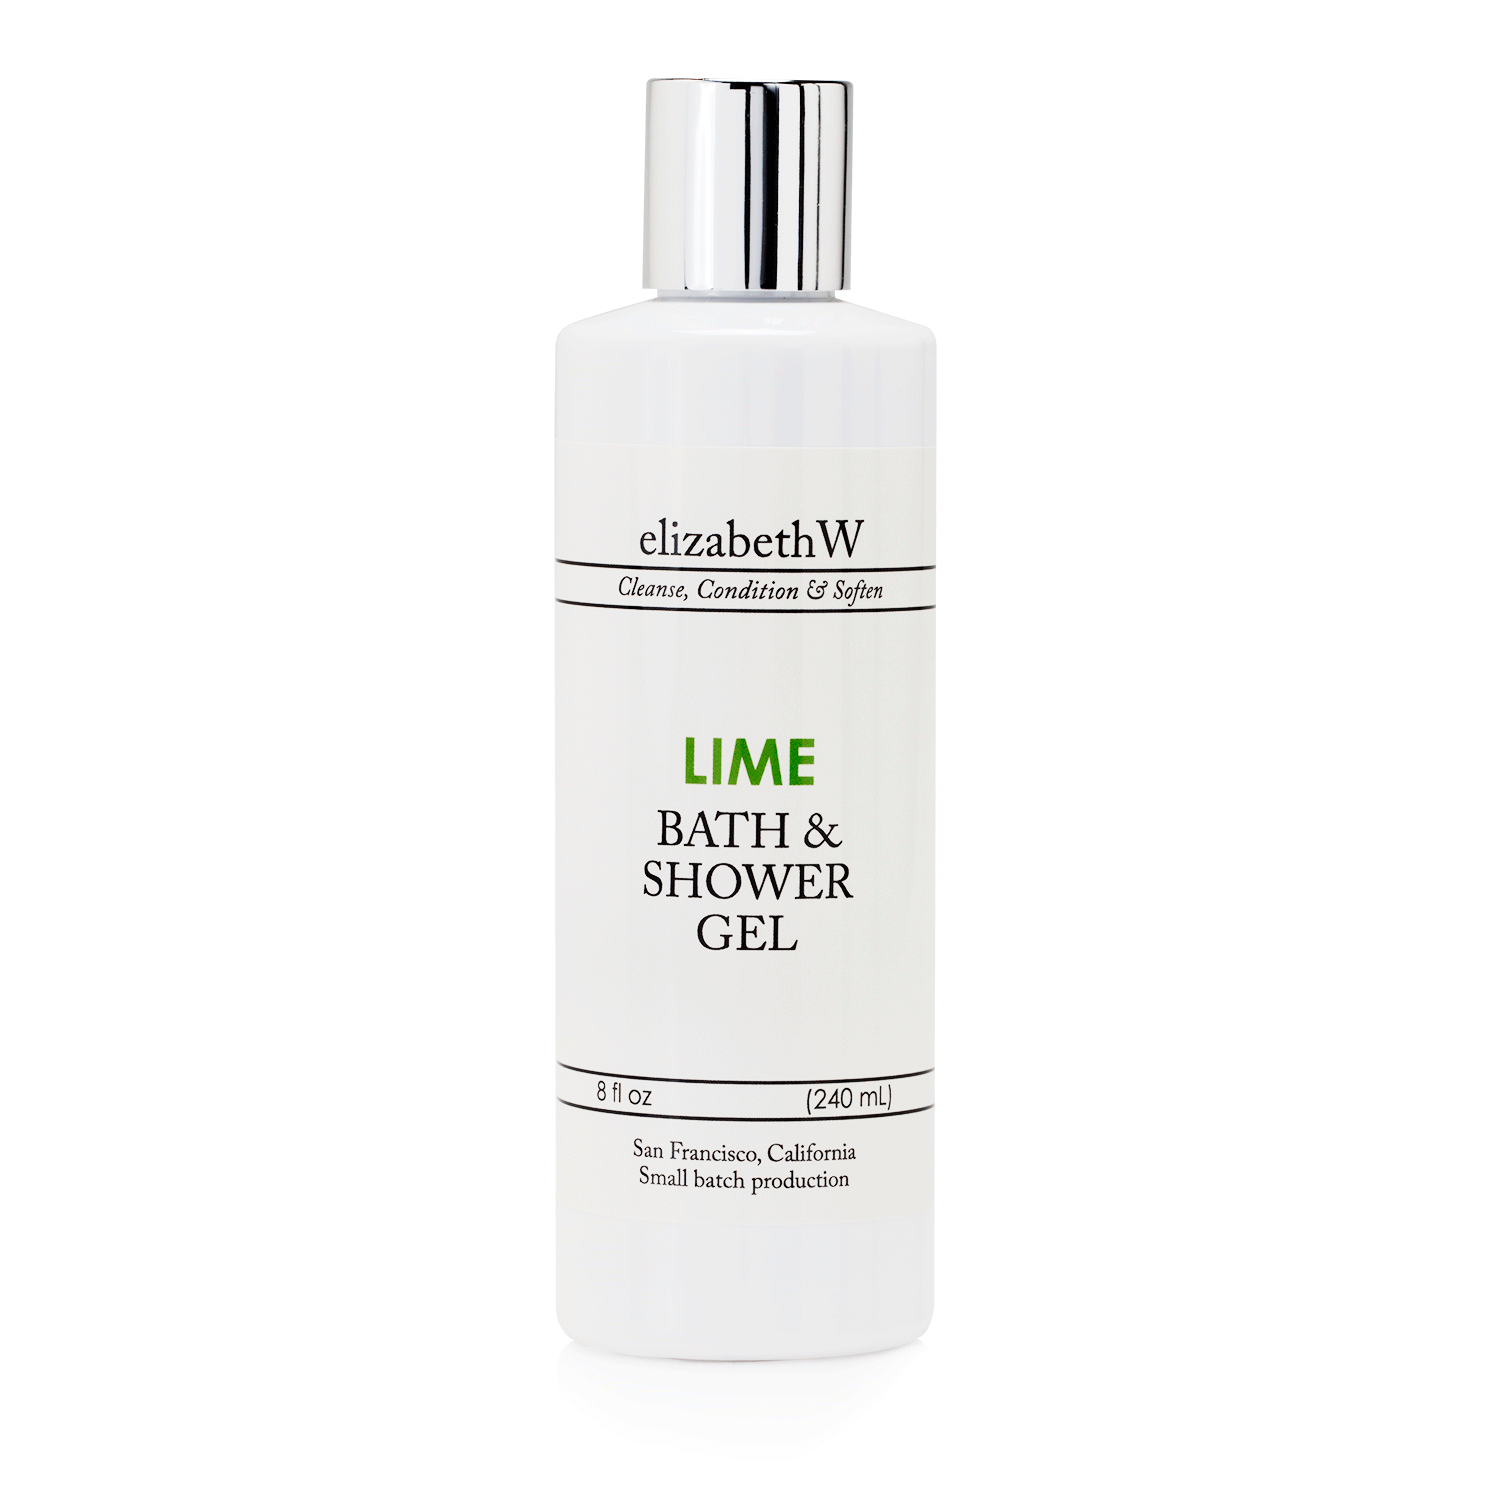 Lime Bath & Shower Gel